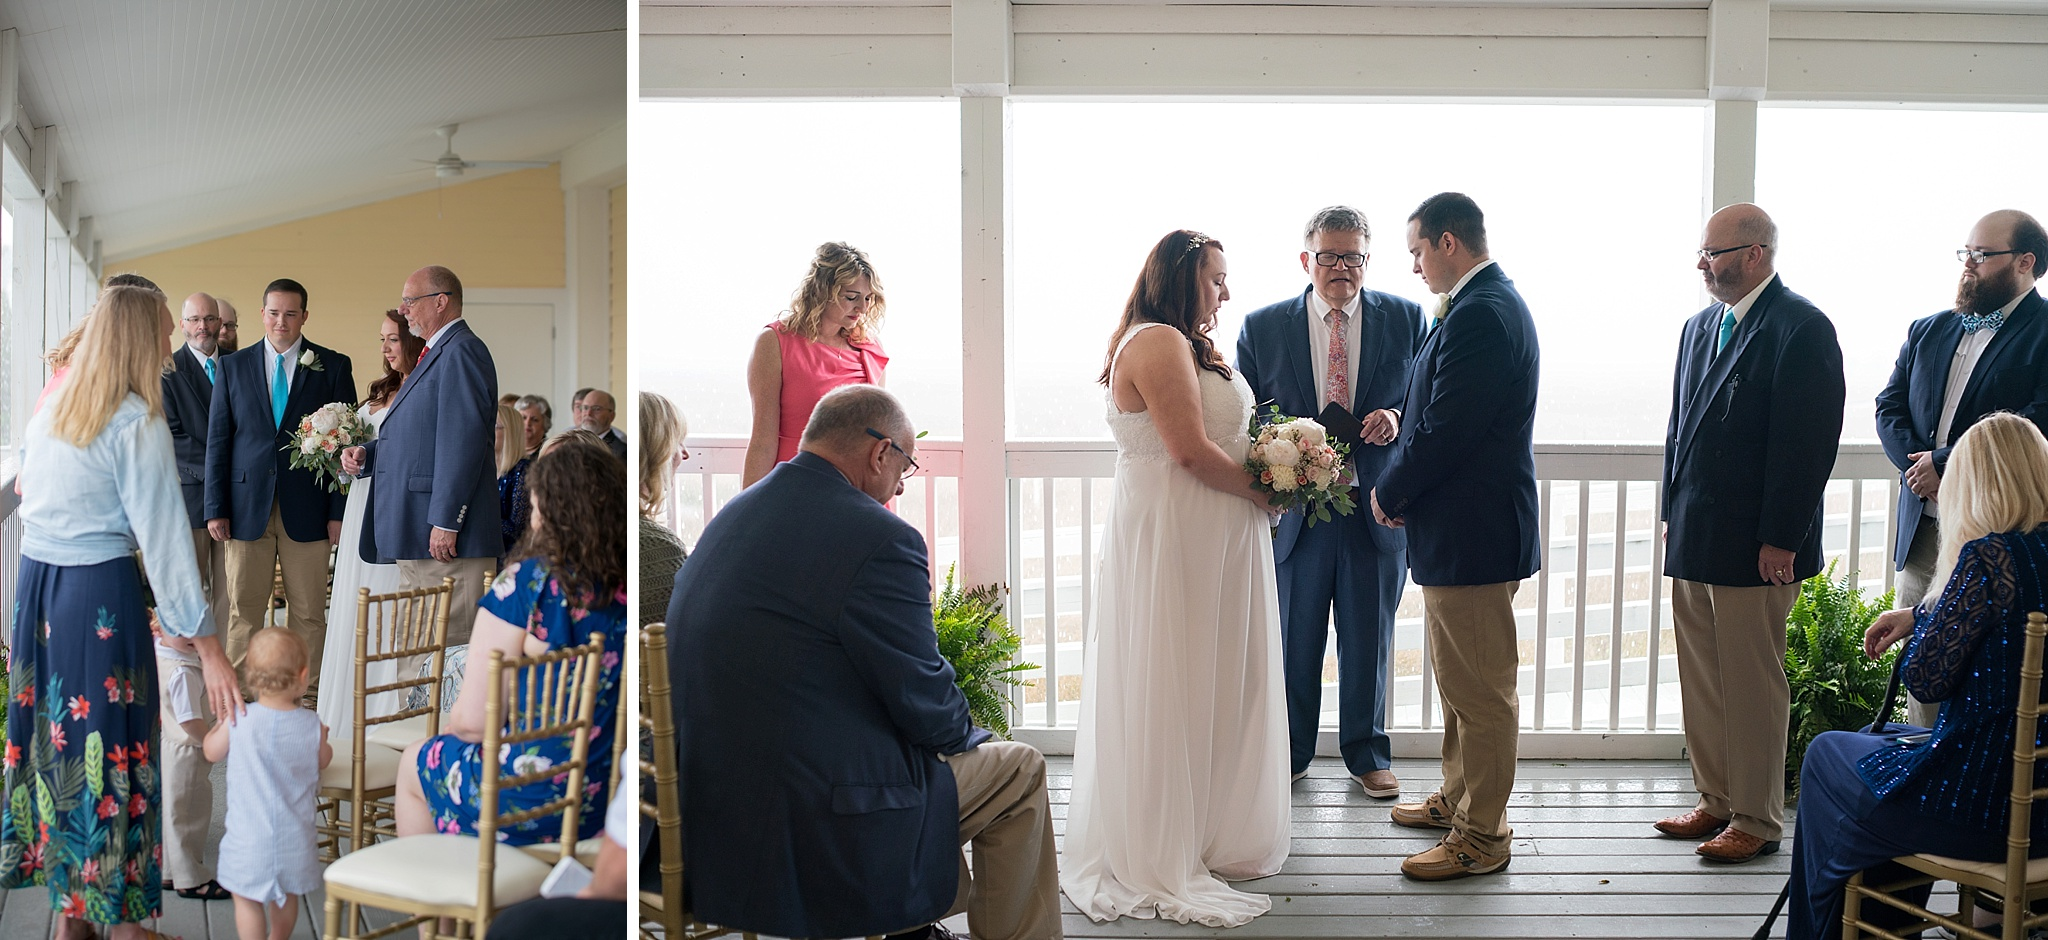 Manteo-NC-Wedding-Photographer-116.jpg